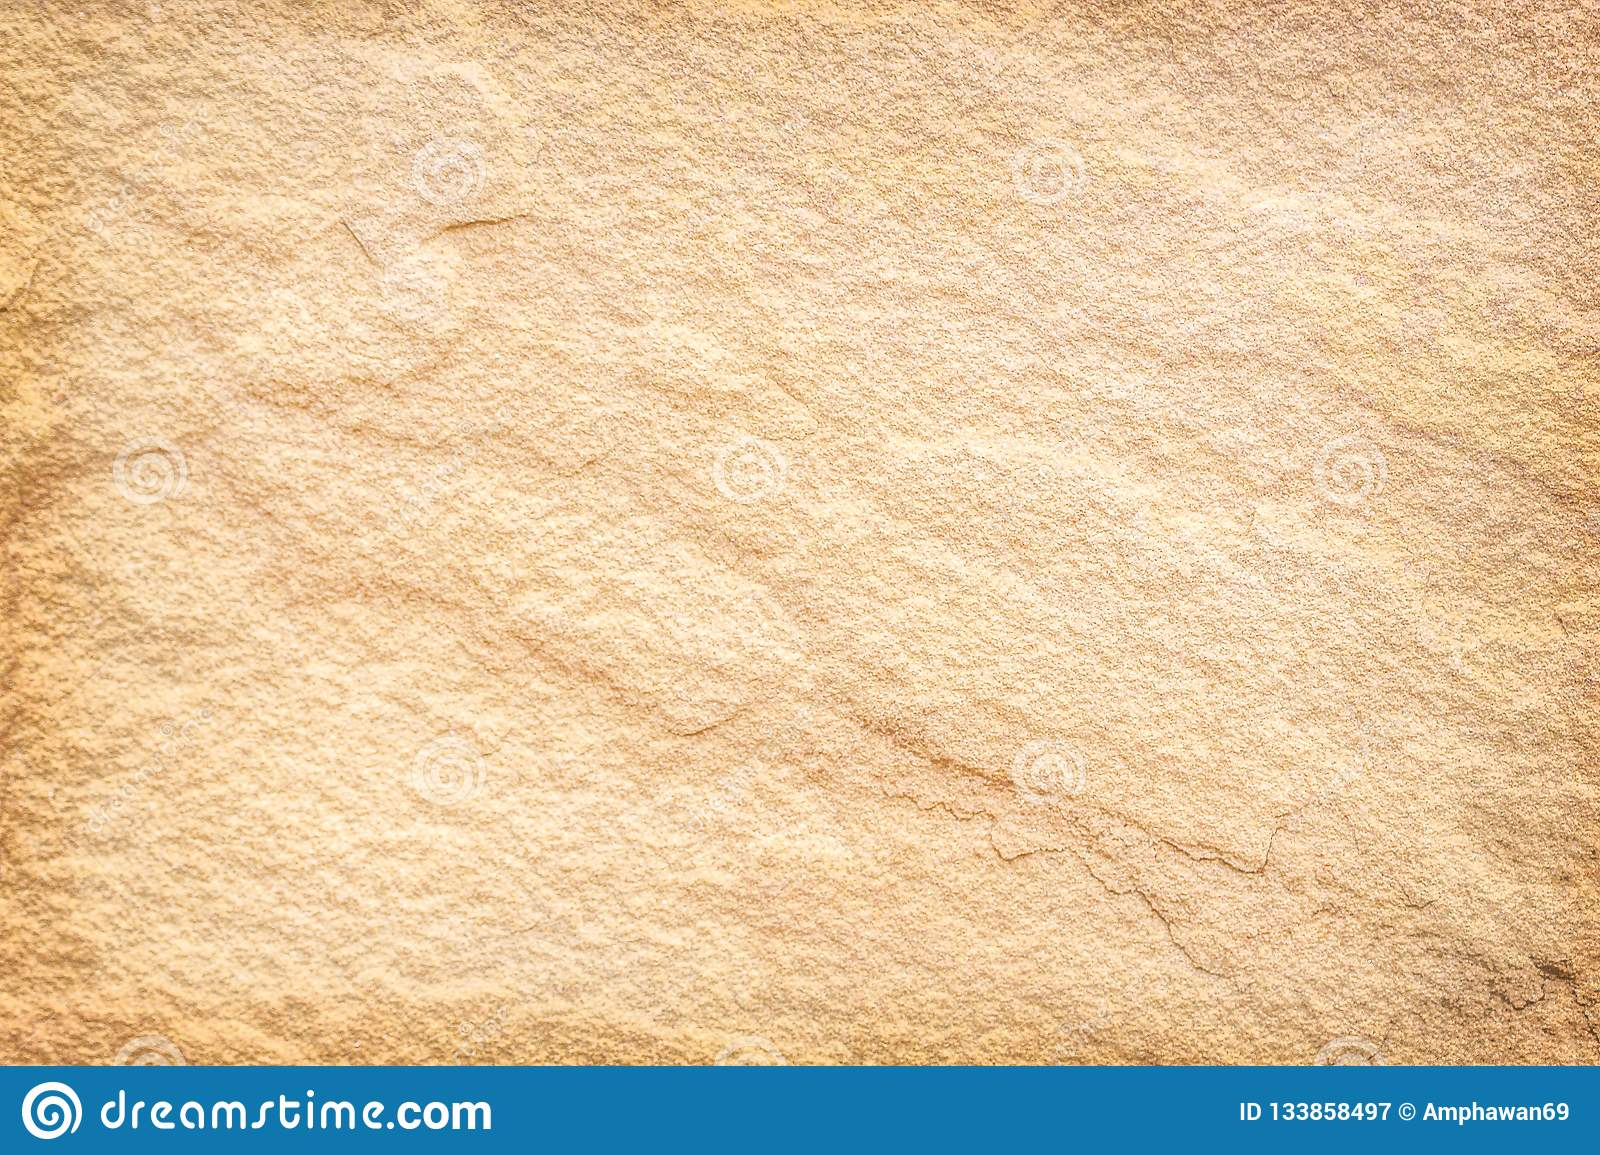 Texture brown sandstone patterns natural abstract background